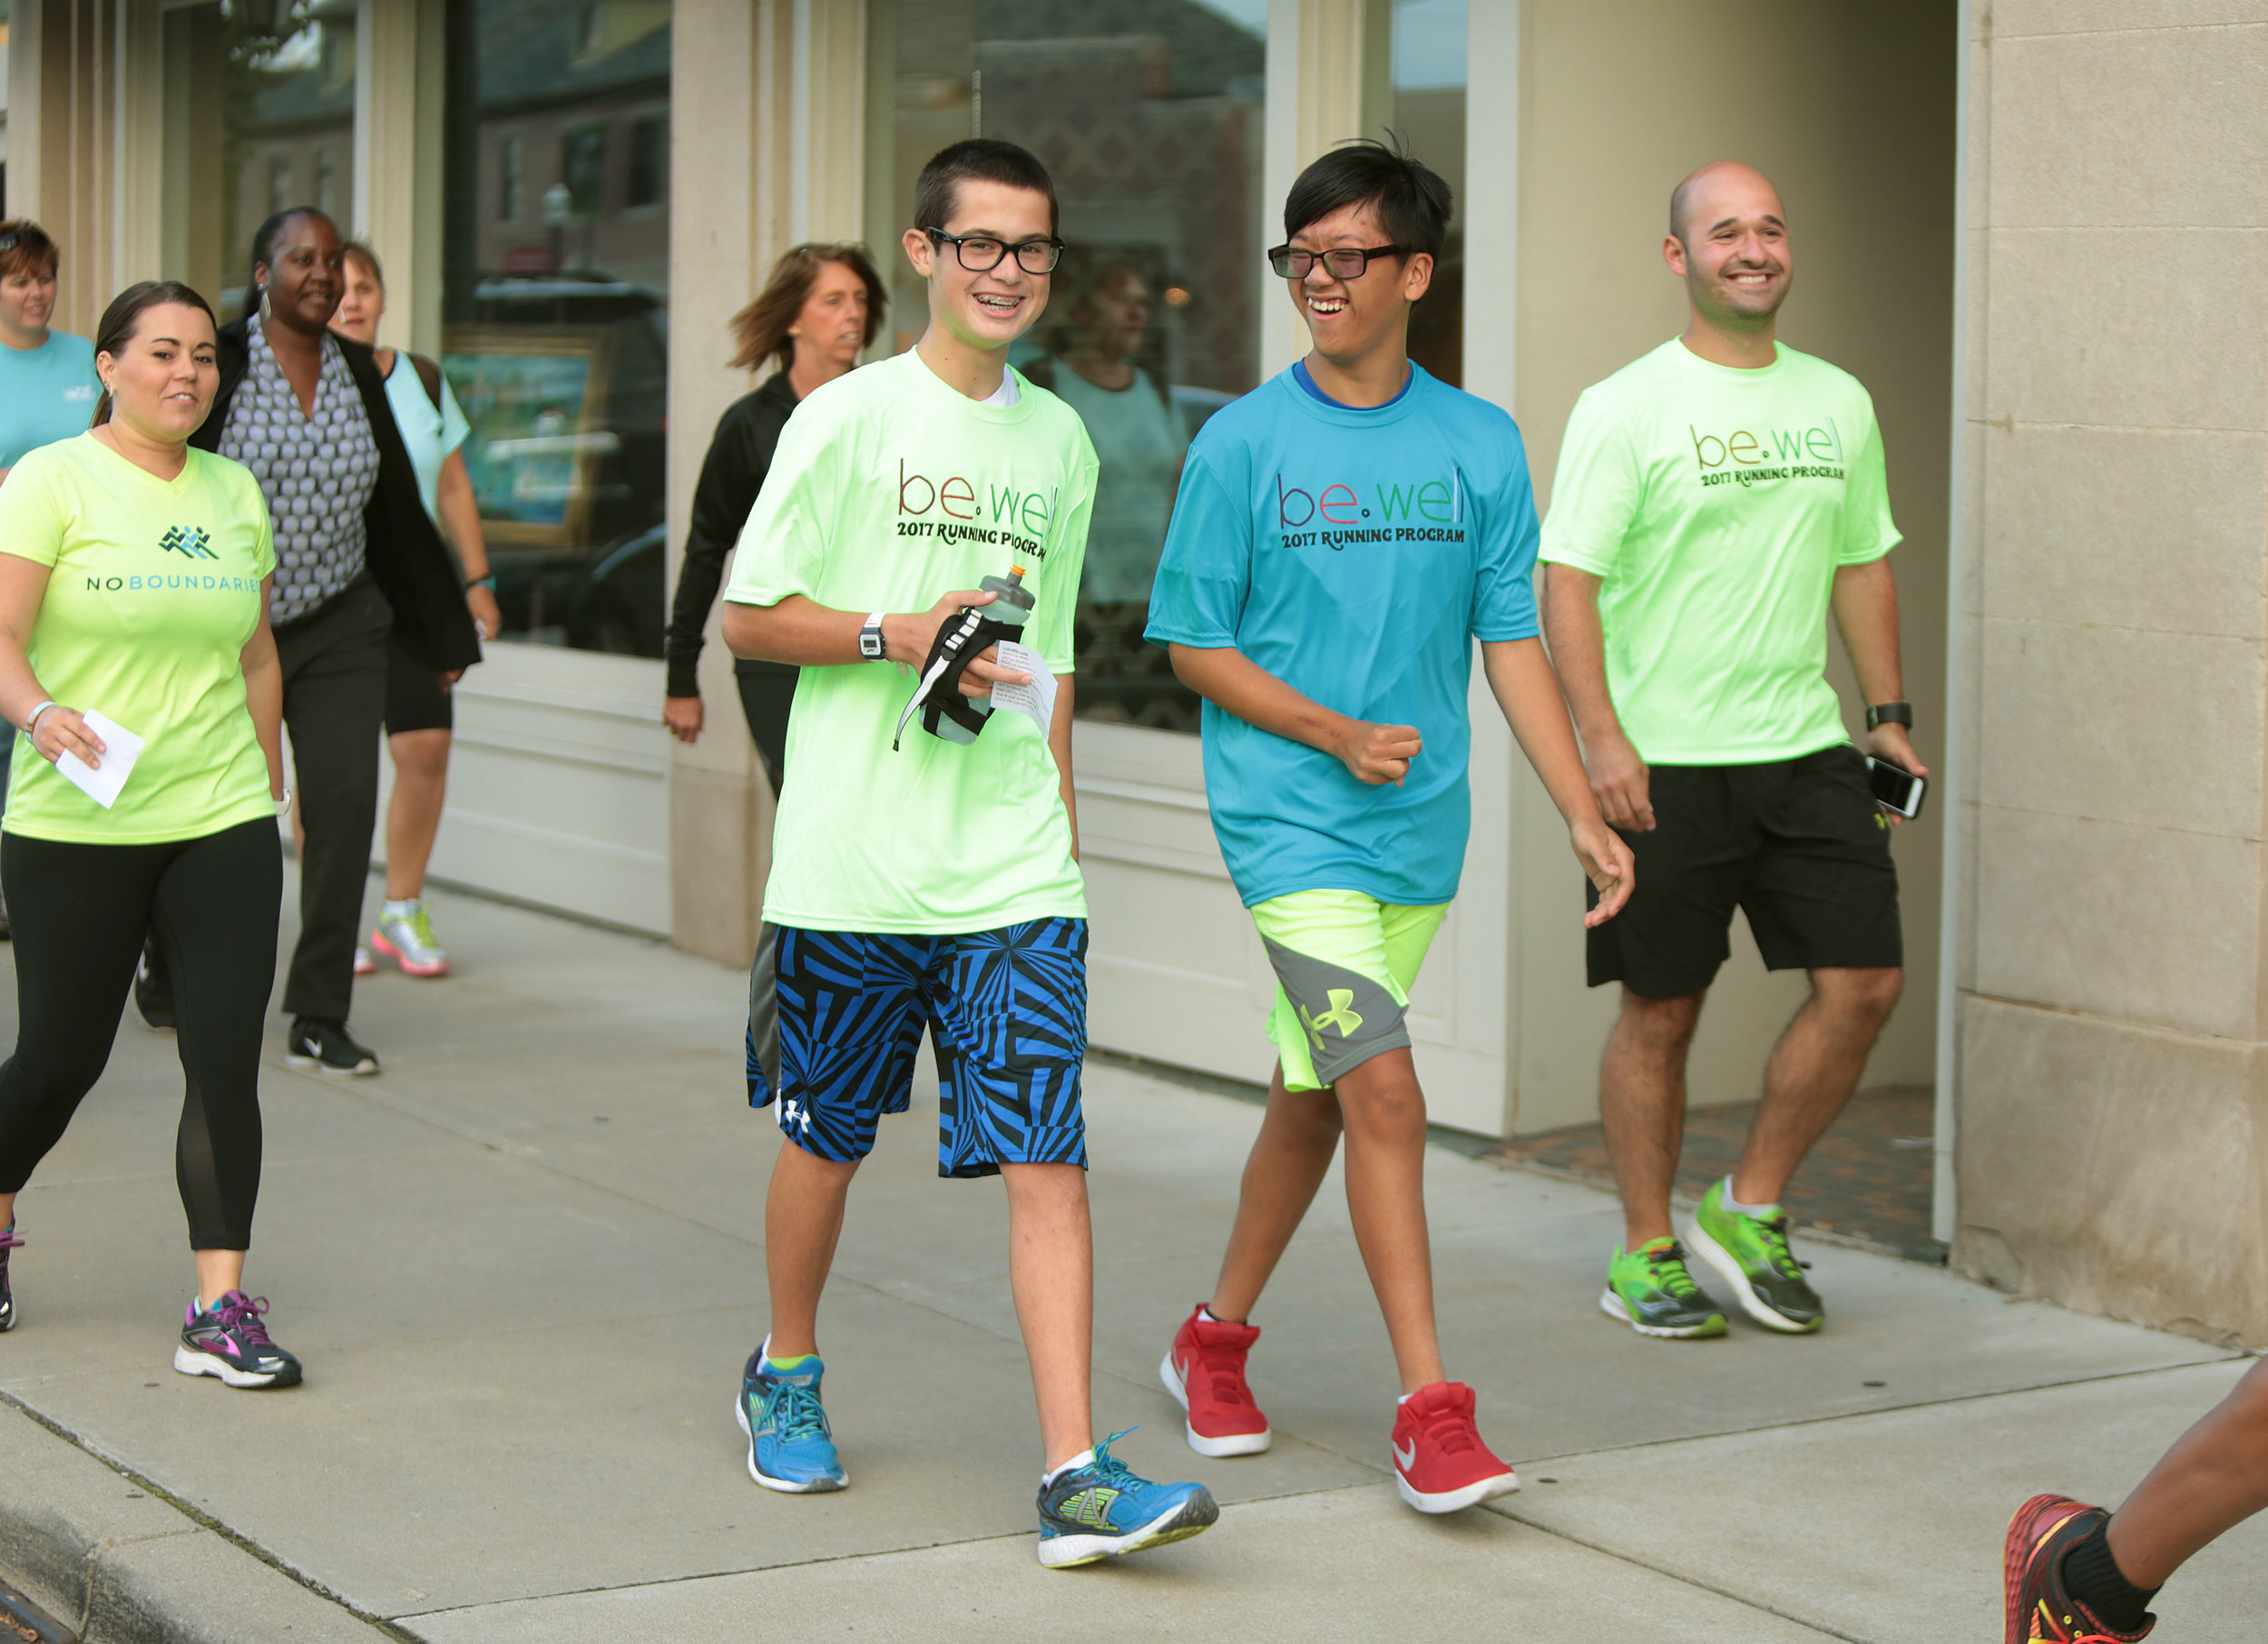 The group of runners and their buddies starts at Fleet Feet Sports twice a week to train for the Matthew 25 Hunger 5K. The race will take place on November 4th.